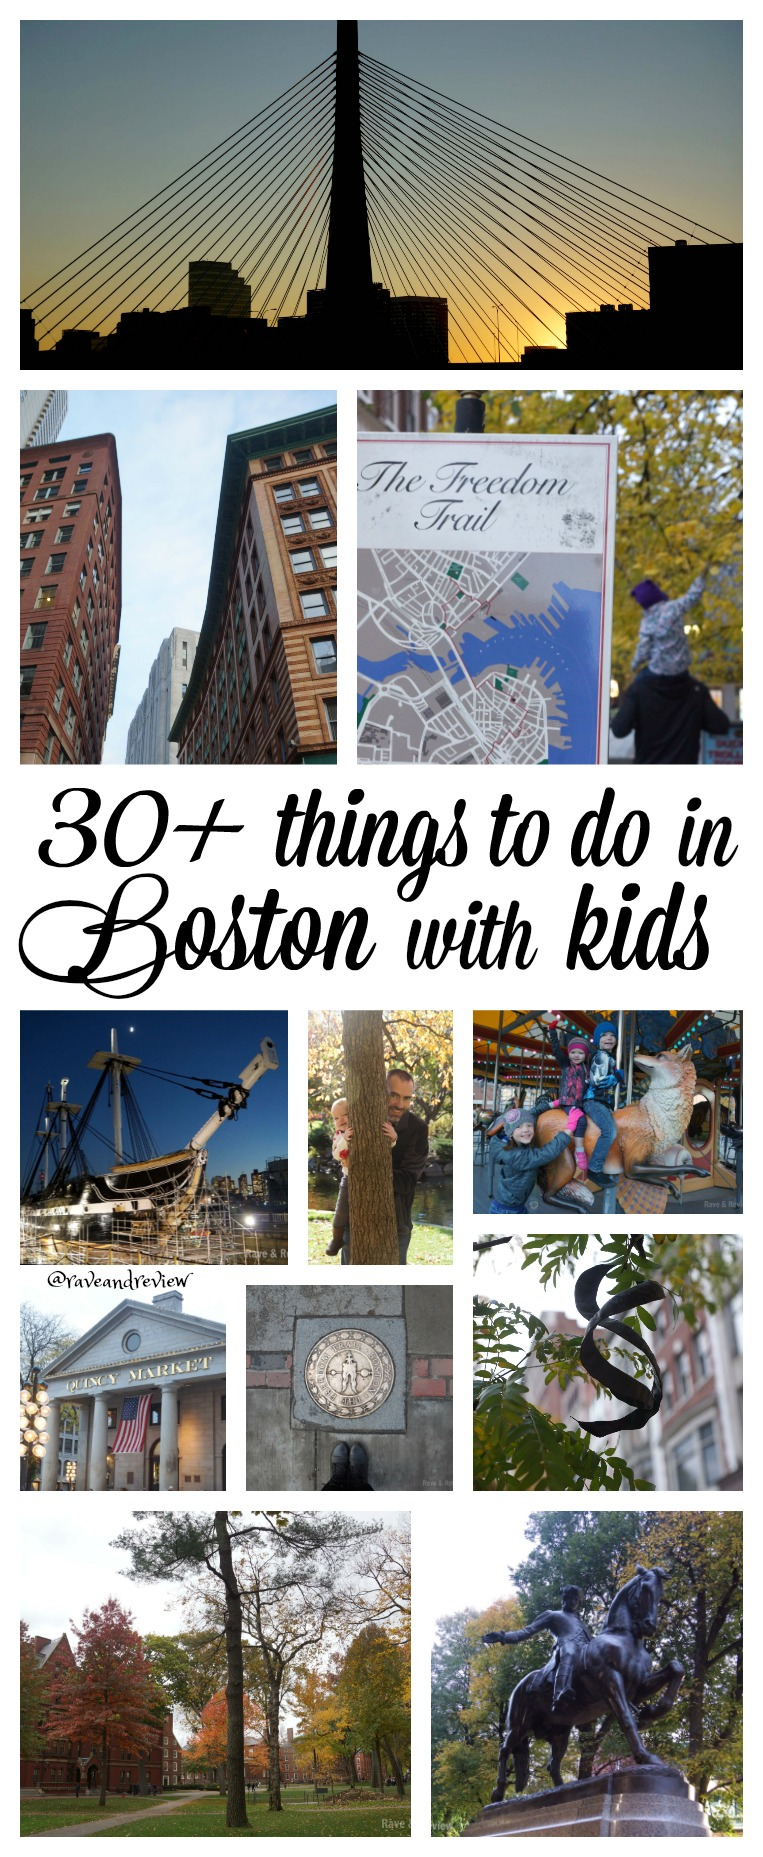 30 things to do in Boston with kids